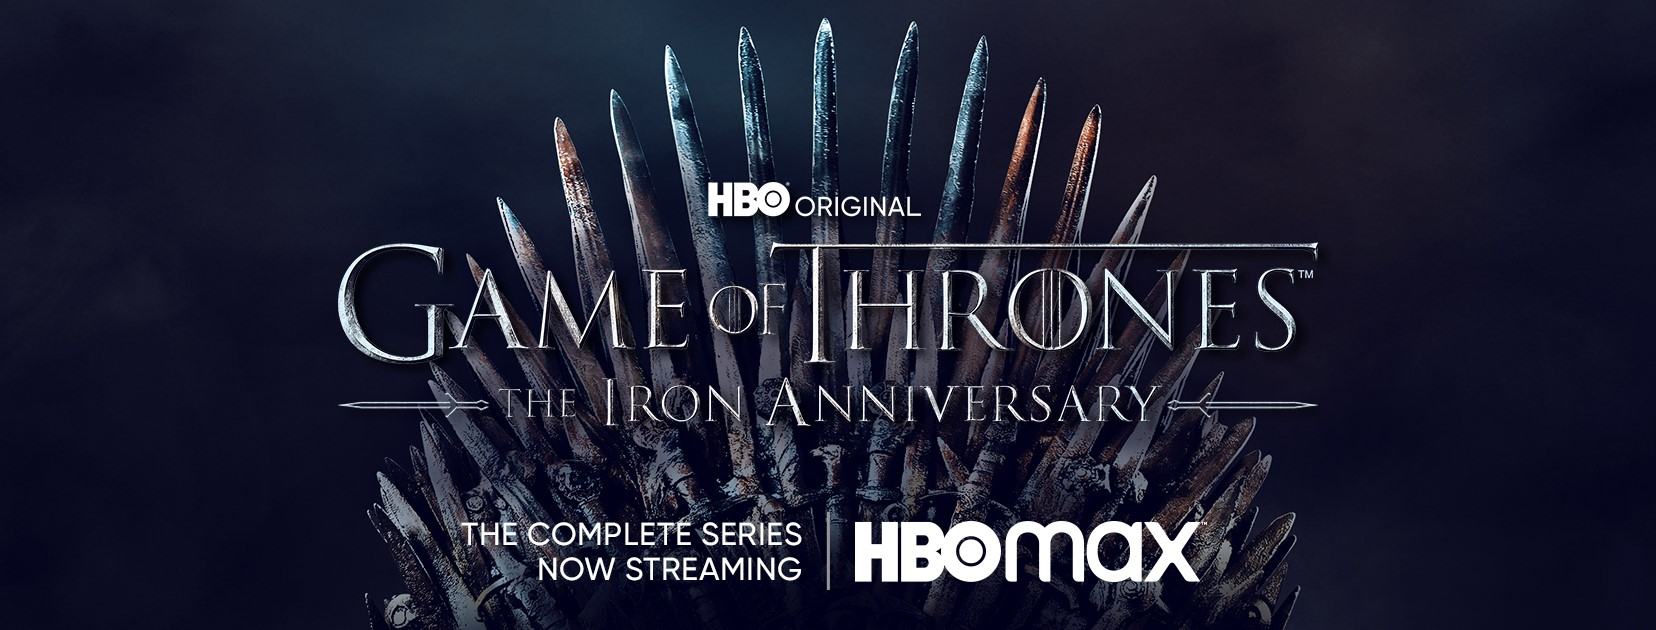 Game of Thrones news: Iron Anniversary, more shows and a play